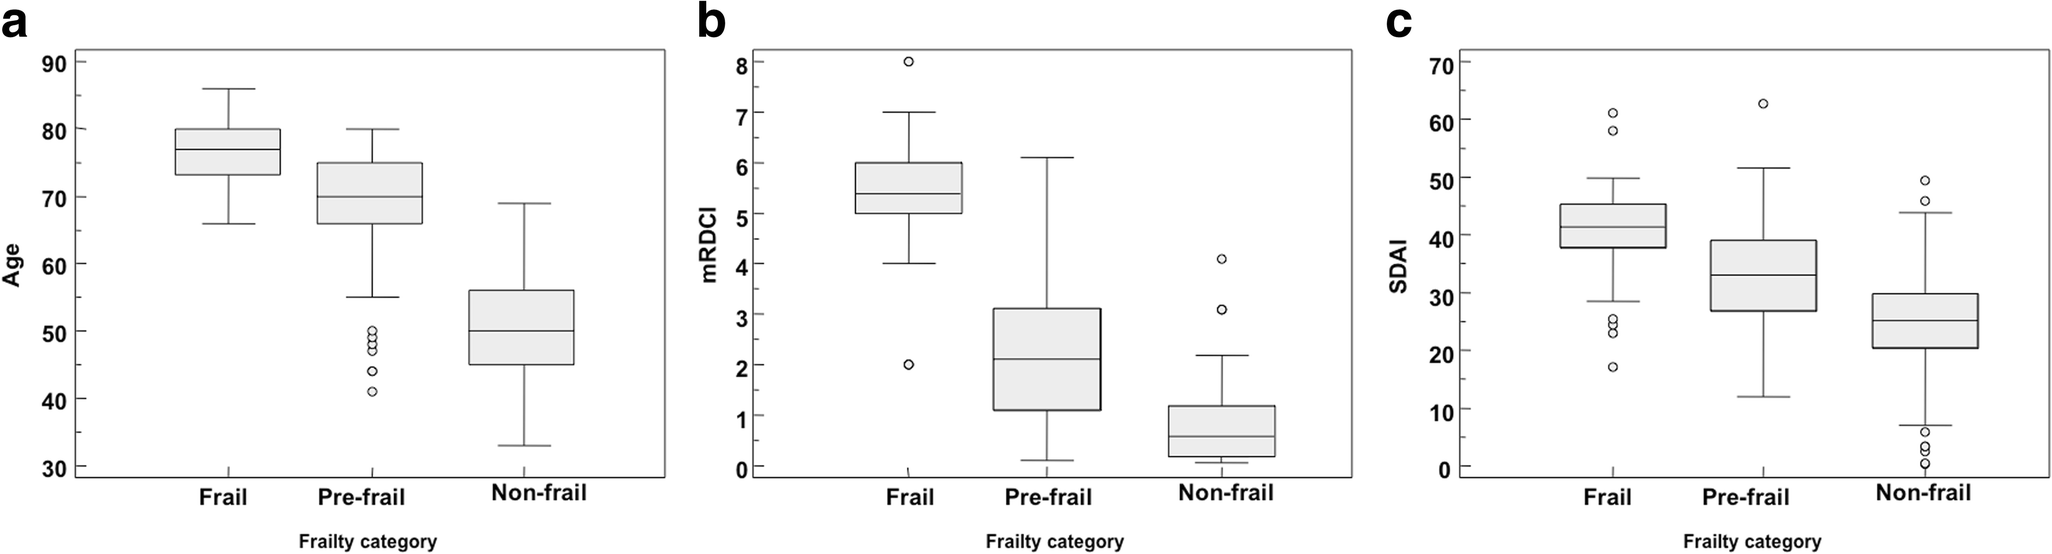 Prevalence of frailty and its associated factors in patients